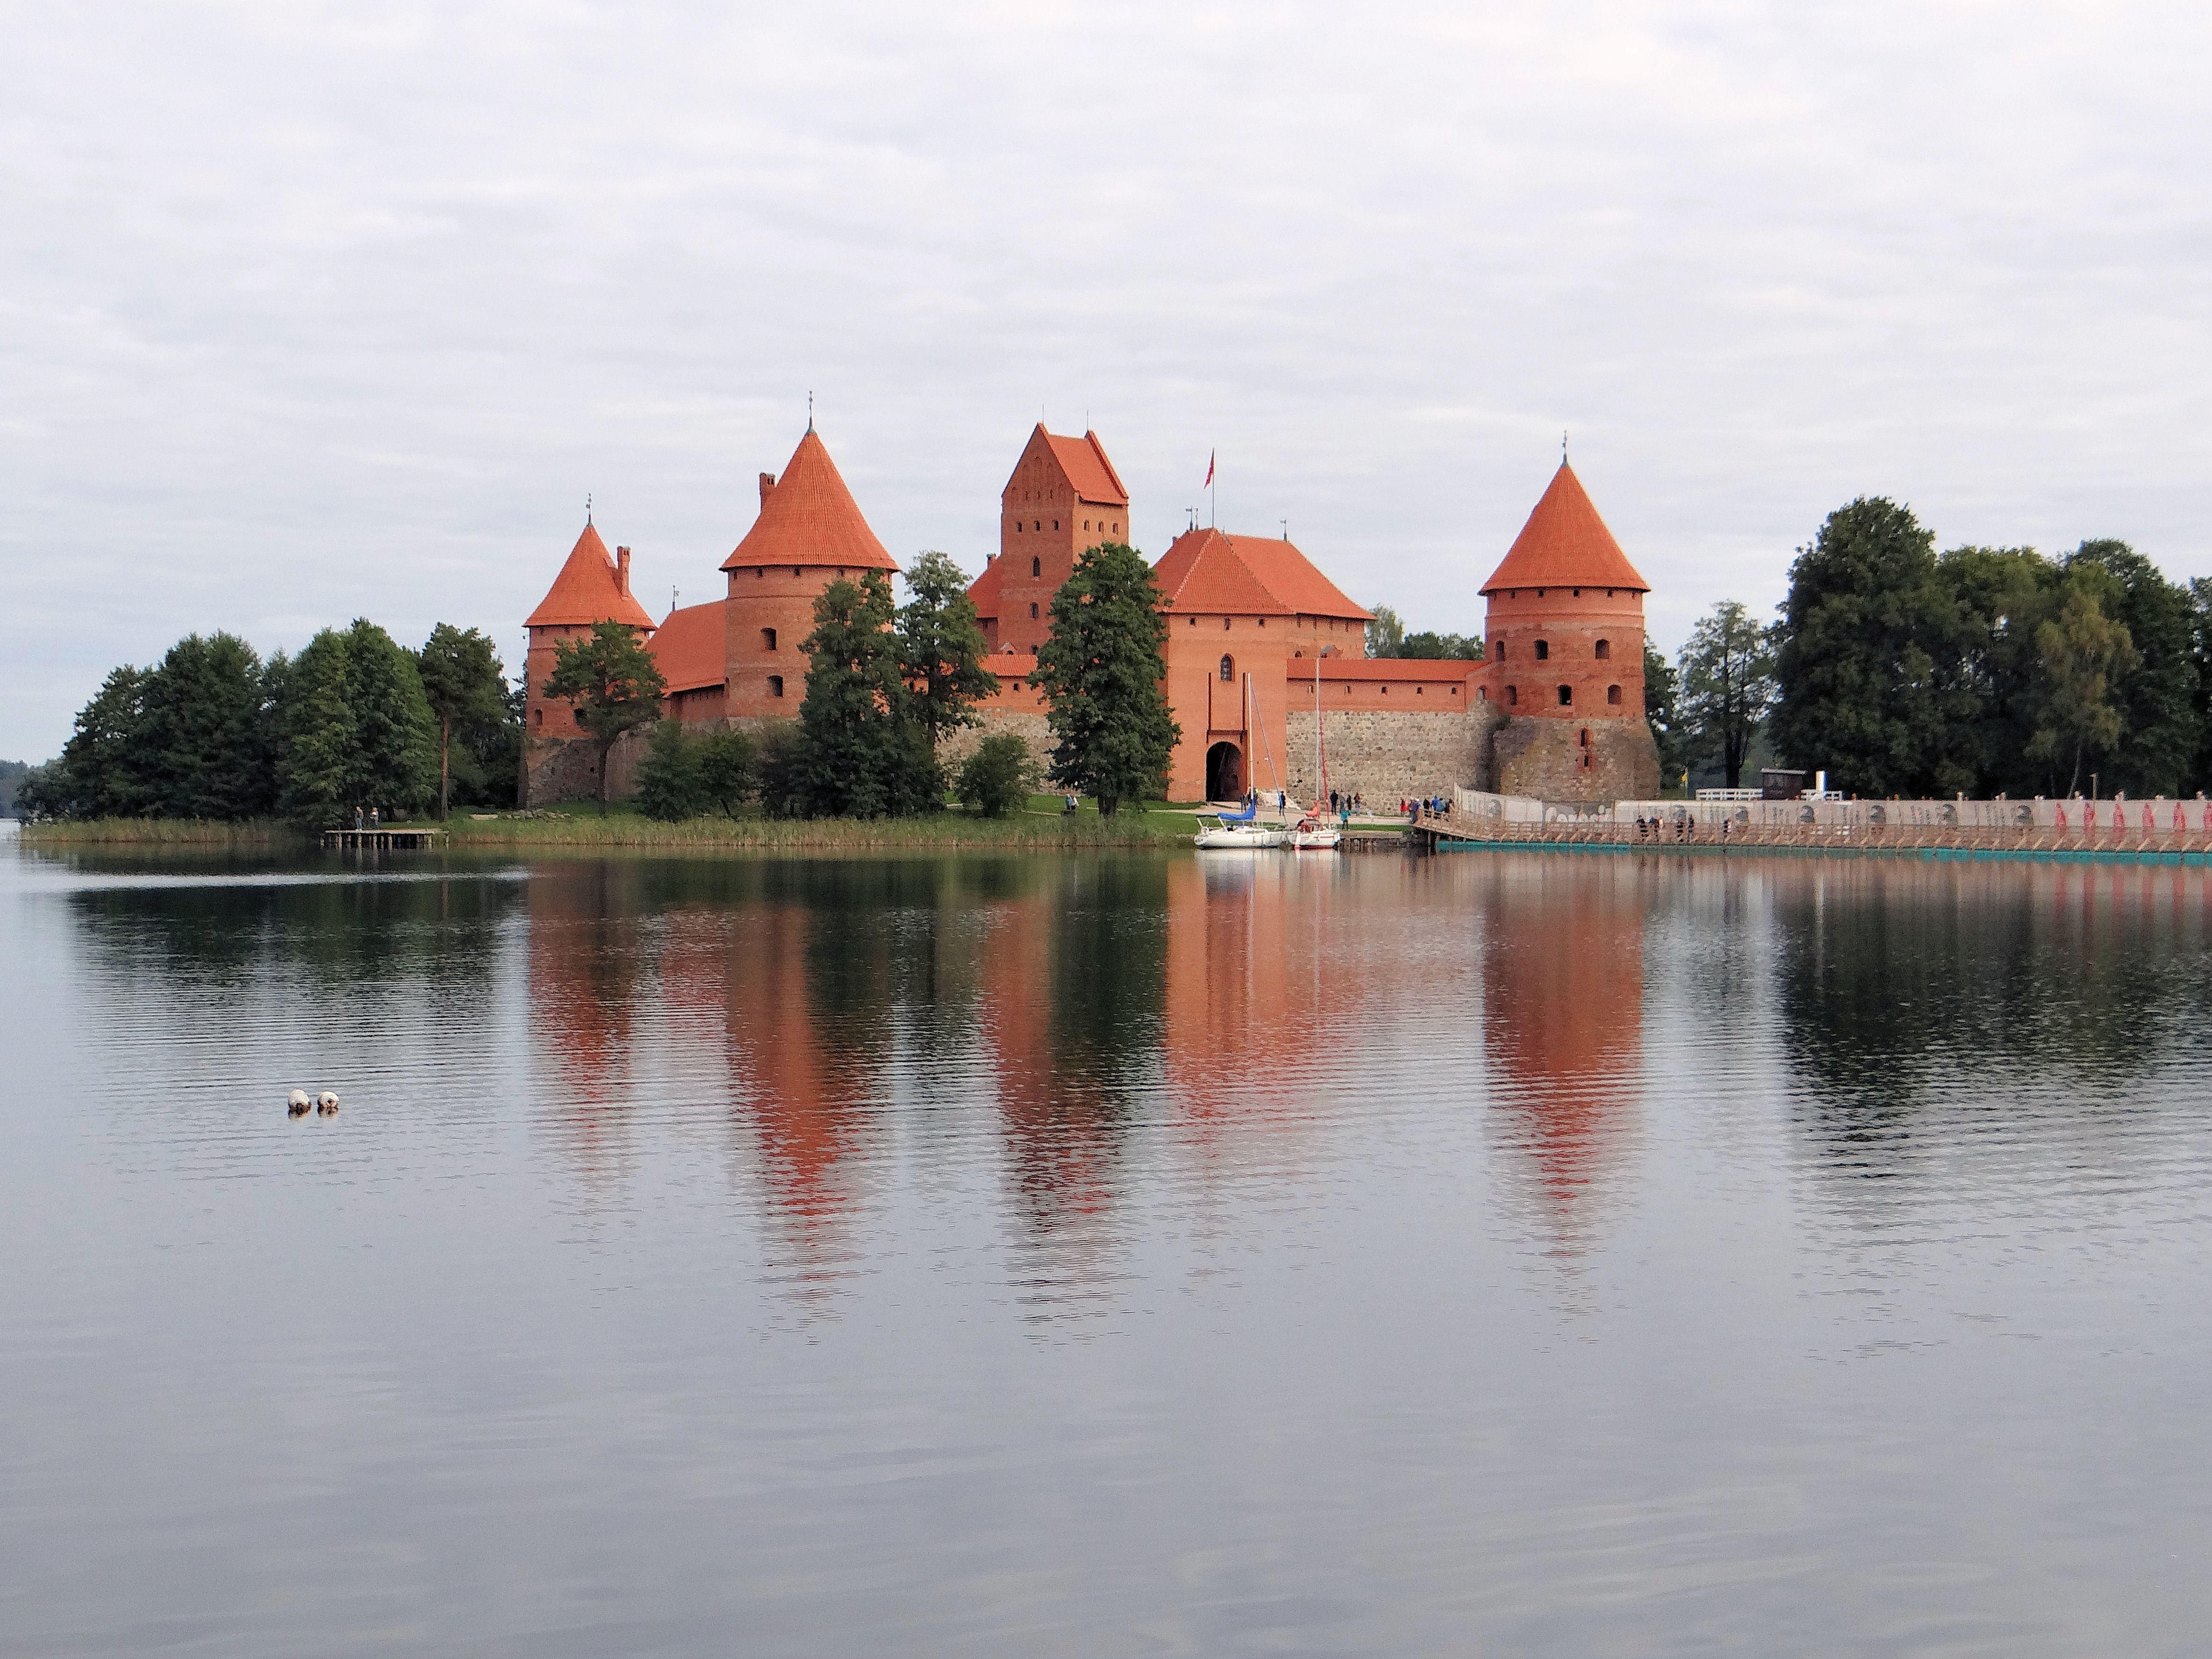 Warsaw & Baltic States - The Island Castle of Trakai, Trakai, Lithuania